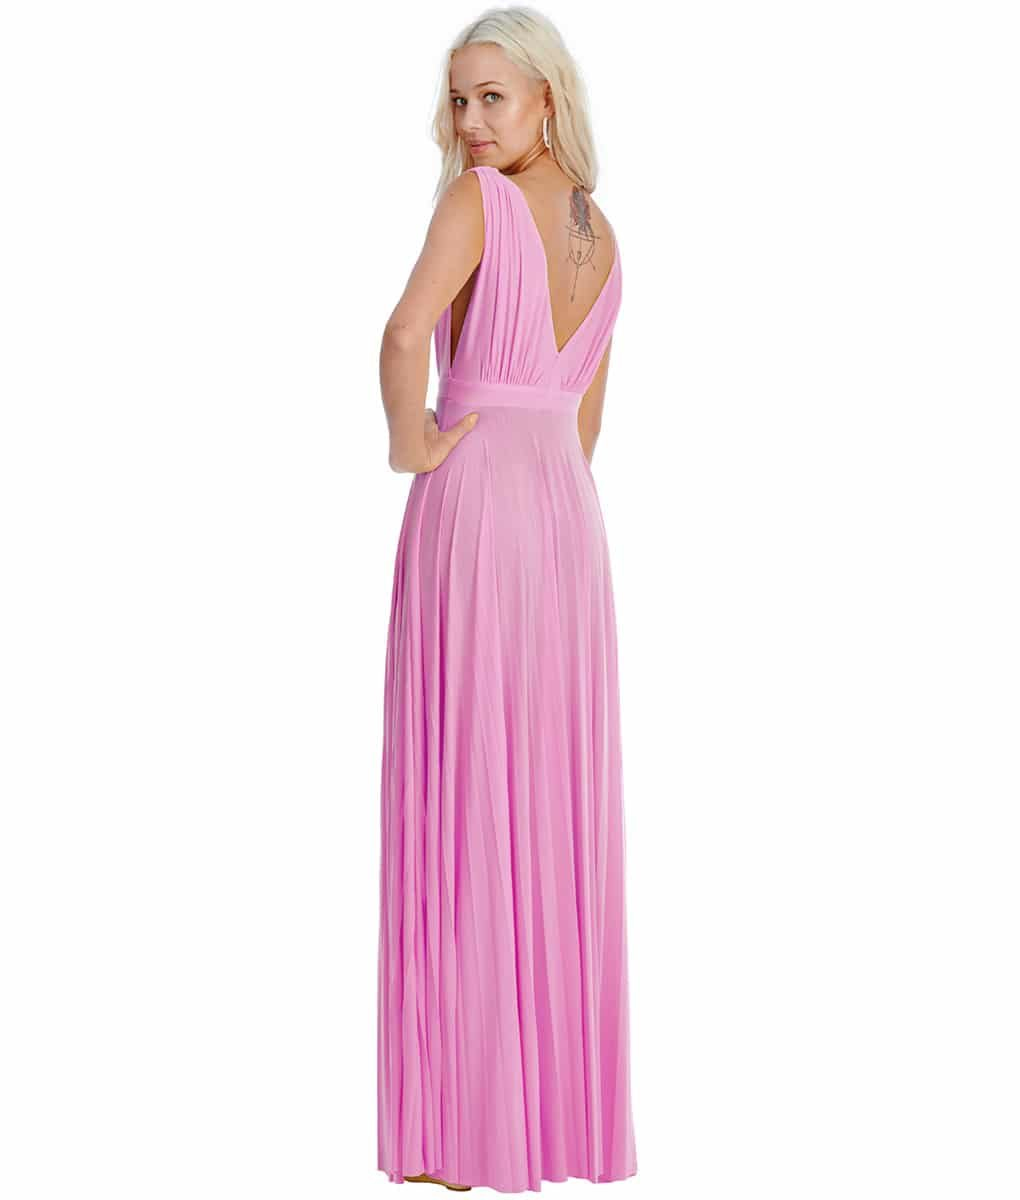 City Goddess - Pink Plunge Gown - Alila